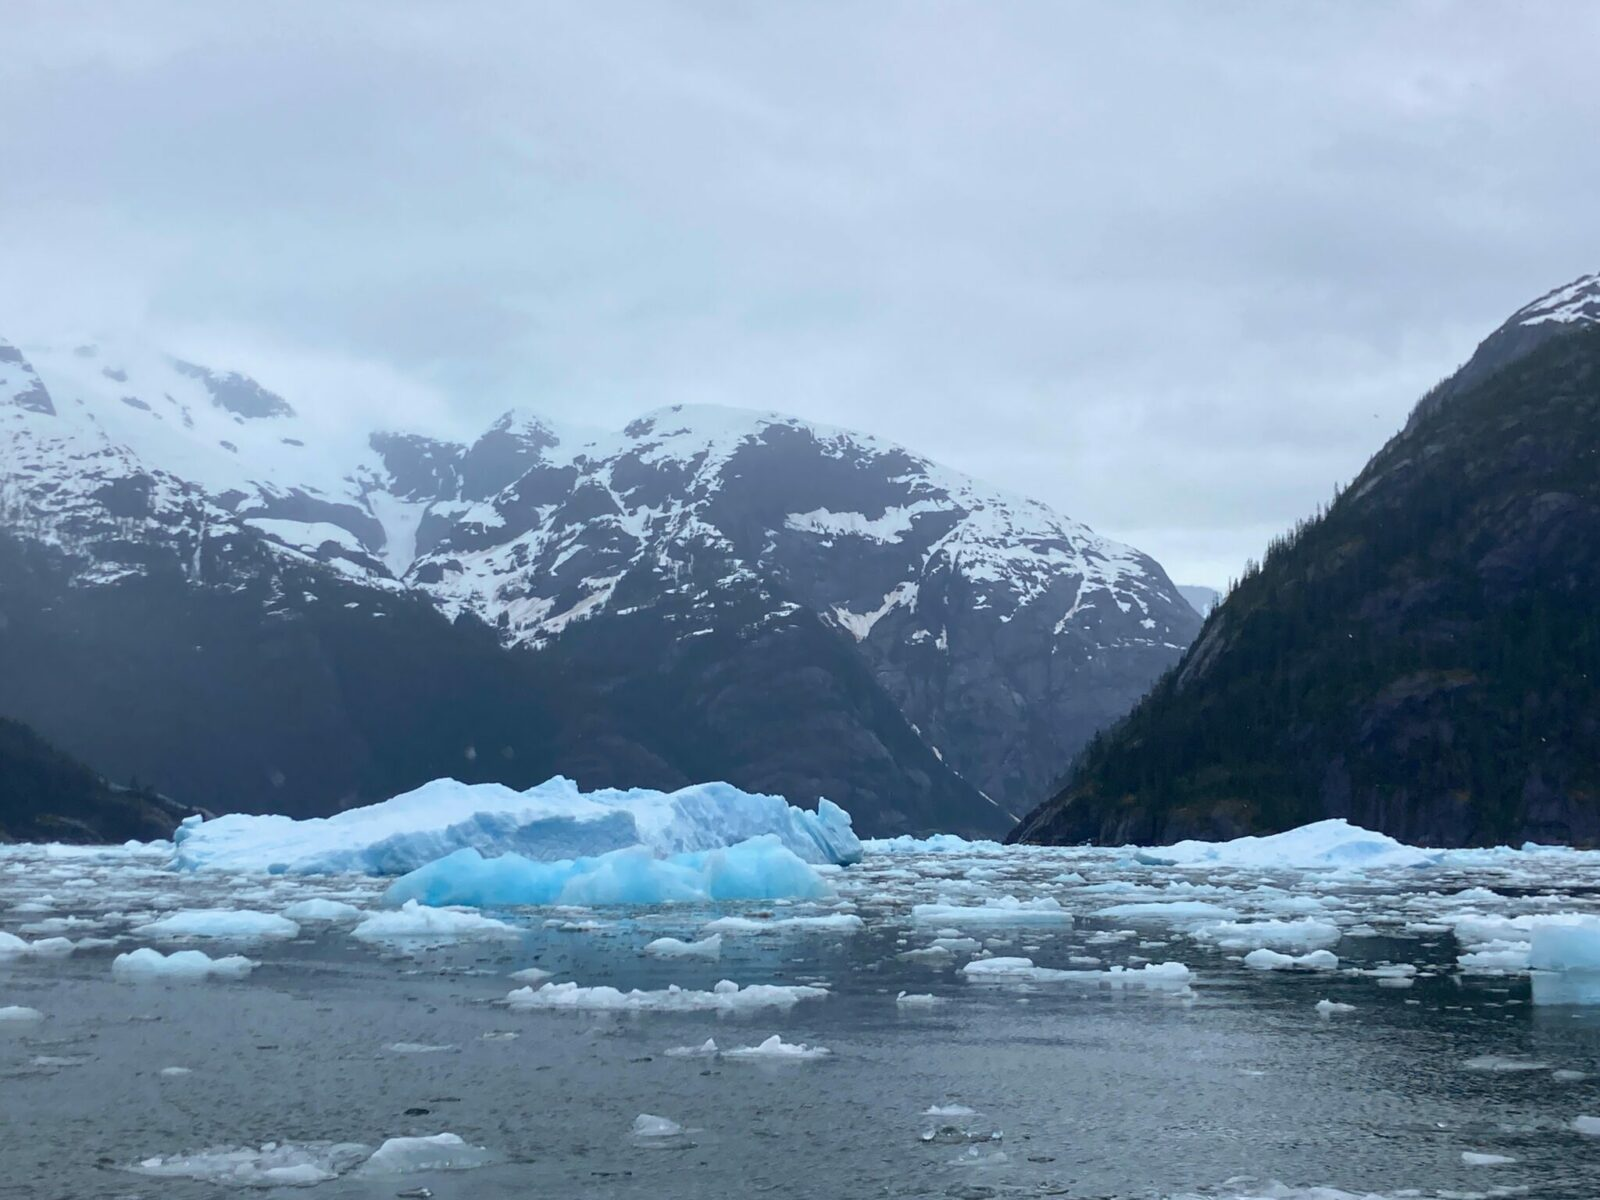 Icebergs from the LeConte Glacier fill up the water in LeConte Bay. Some of the icebergs are small and some are the size of houses. Around the sides of the bay are high snow capped mountains and forested hills